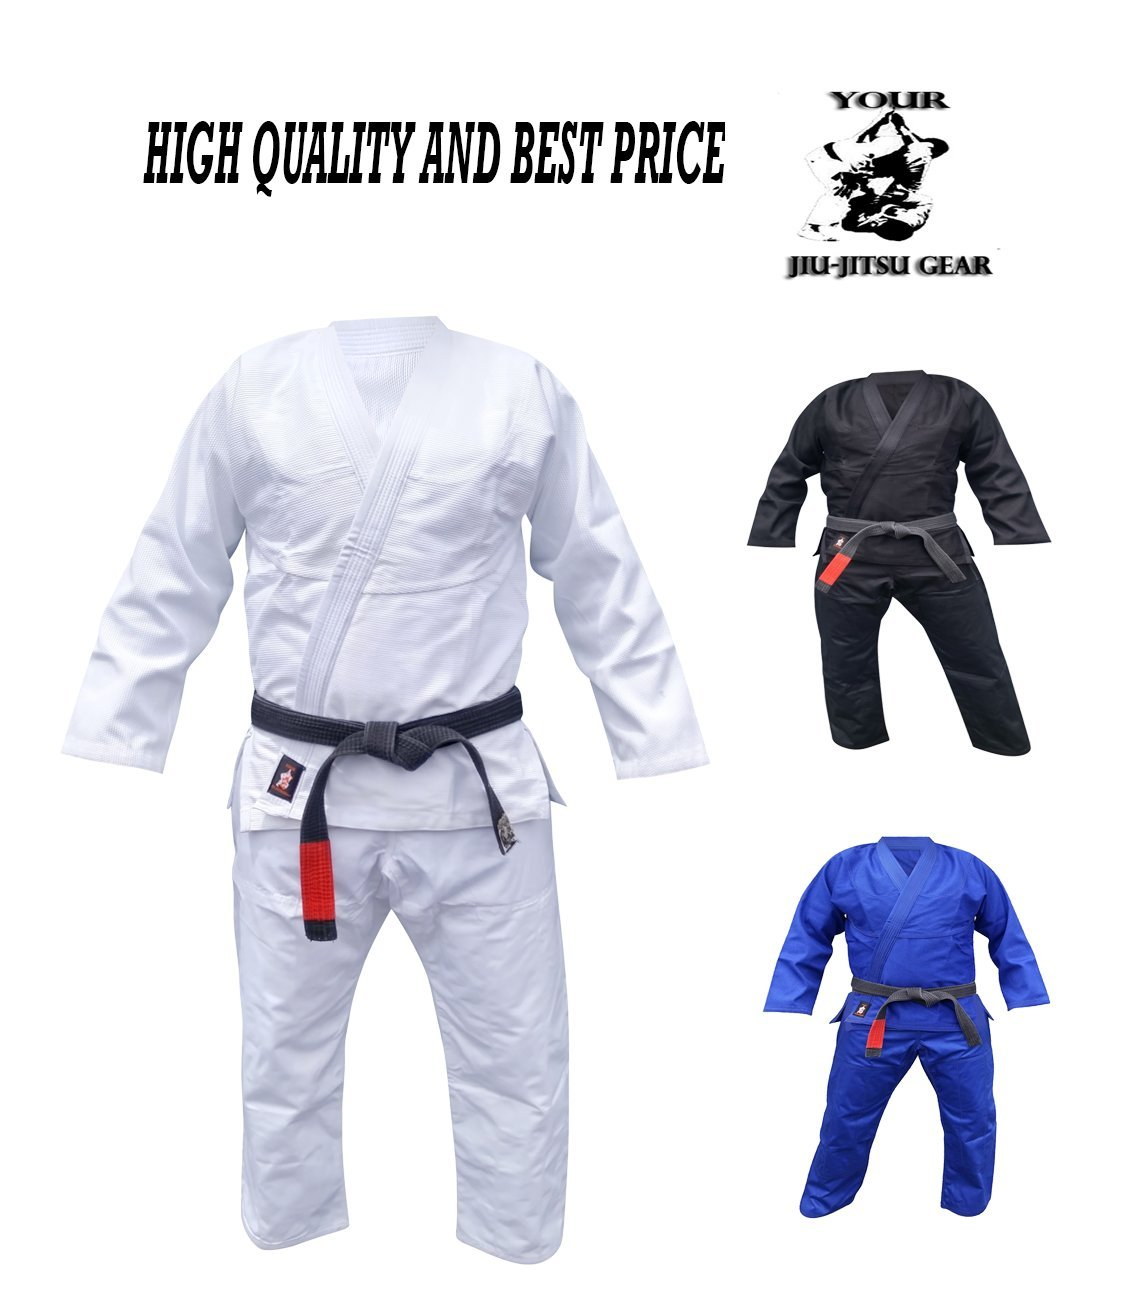 Your Jiu Jitsu Gear Brazilian Jiu Jitsu Uniform Light Weight A2 White Free Belt by Your Jiu Jitsu Gear